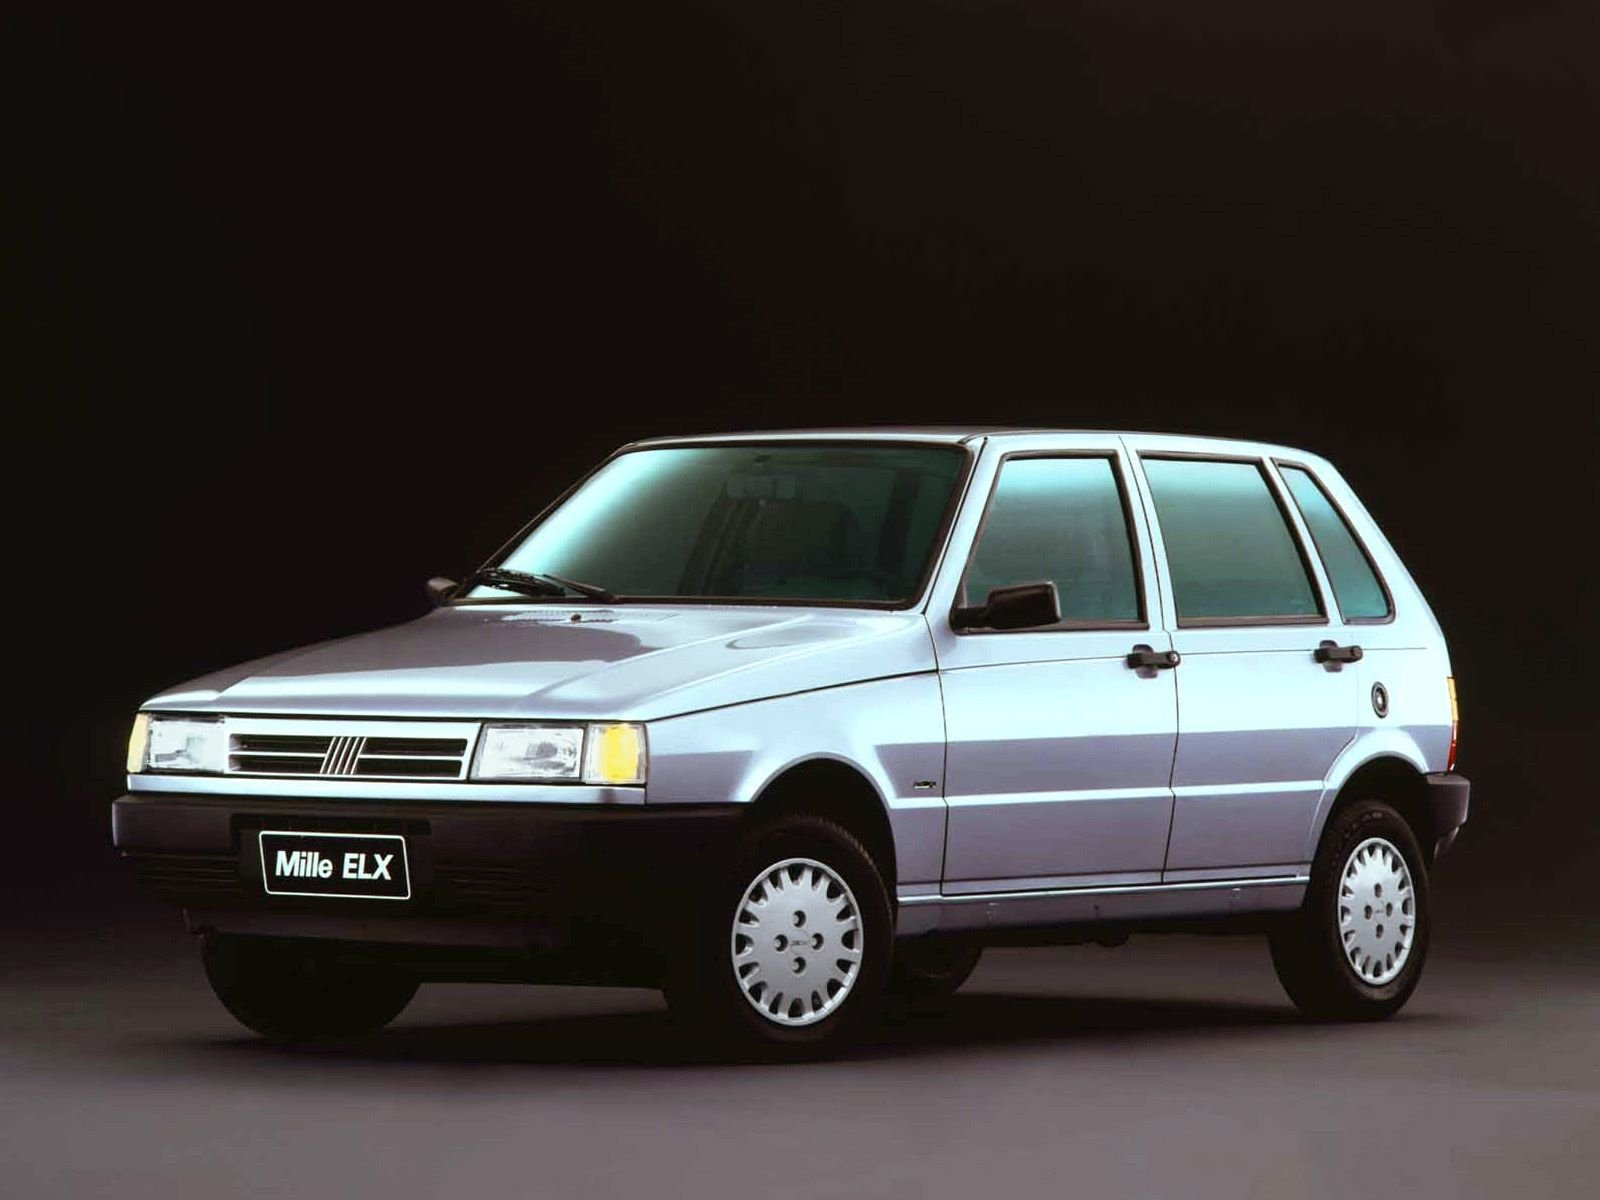 uno mille elx 1995